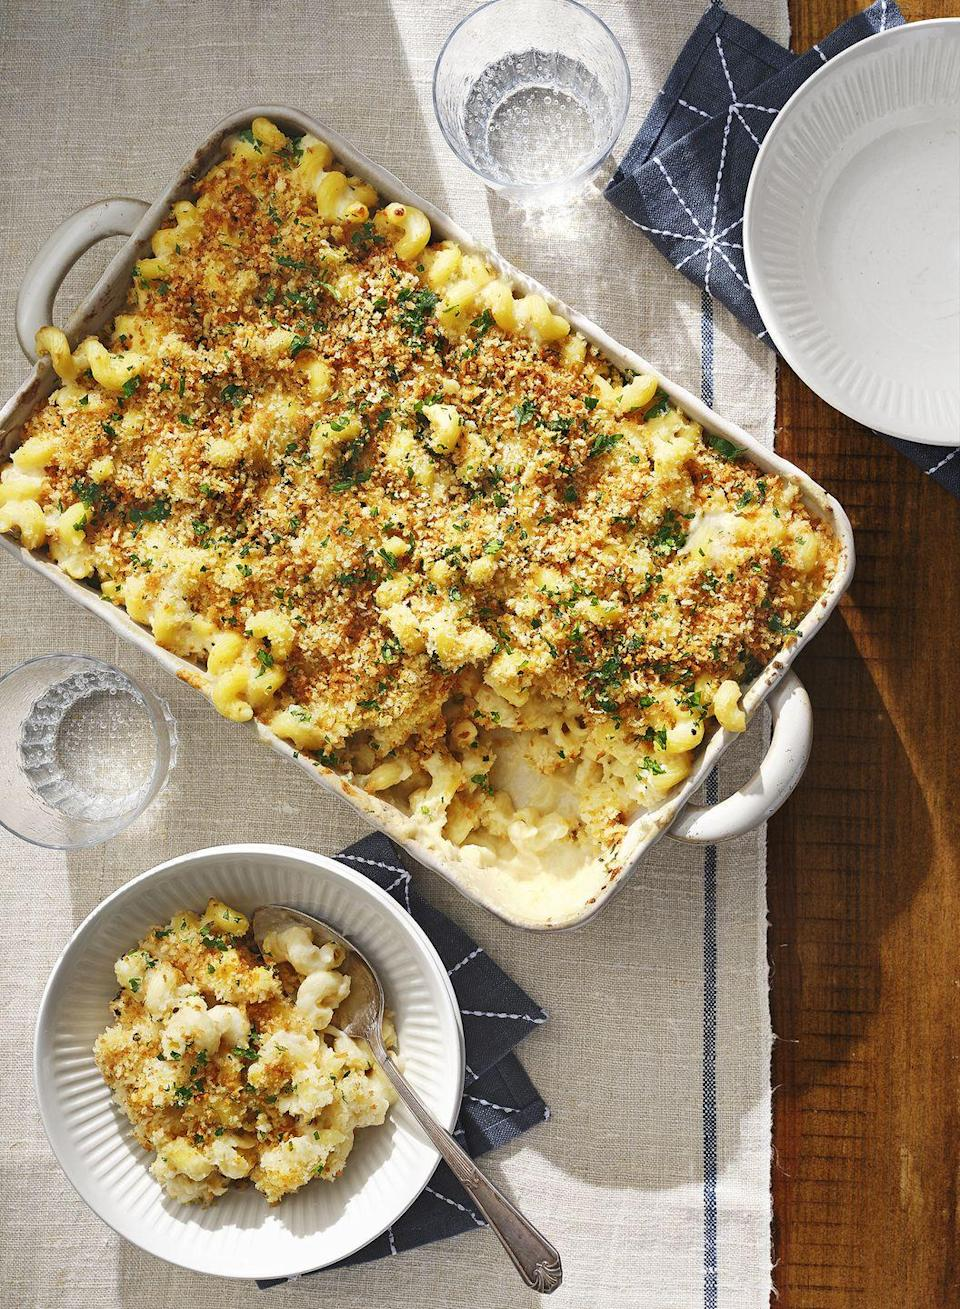 "<p>Baked mac is the elegant version of the weeknight stovetop variety. Don't skip the cauliflower, it gives this dish an even richer, cheesier taste. </p><p><strong><a href=""https://www.countryliving.com/food-drinks/a30418292/cauliflower-mac-and-cheese-recipe/"" rel=""nofollow noopener"" target=""_blank"" data-ylk=""slk:Get the recipe"" class=""link rapid-noclick-resp"">Get the recipe</a>.</strong></p><p><strong><a class=""link rapid-noclick-resp"" href=""https://www.amazon.com/Bakeware-Krokori-Rectangular-Aquamarine-Rectangula/dp/B074Z5X8MT/?tag=syn-yahoo-20&ascsubtag=%5Bartid%7C10050.g.34554232%5Bsrc%7Cyahoo-us"" rel=""nofollow noopener"" target=""_blank"" data-ylk=""slk:SHOP BAKING DISHES"">SHOP BAKING DISHES</a><br></strong></p>"